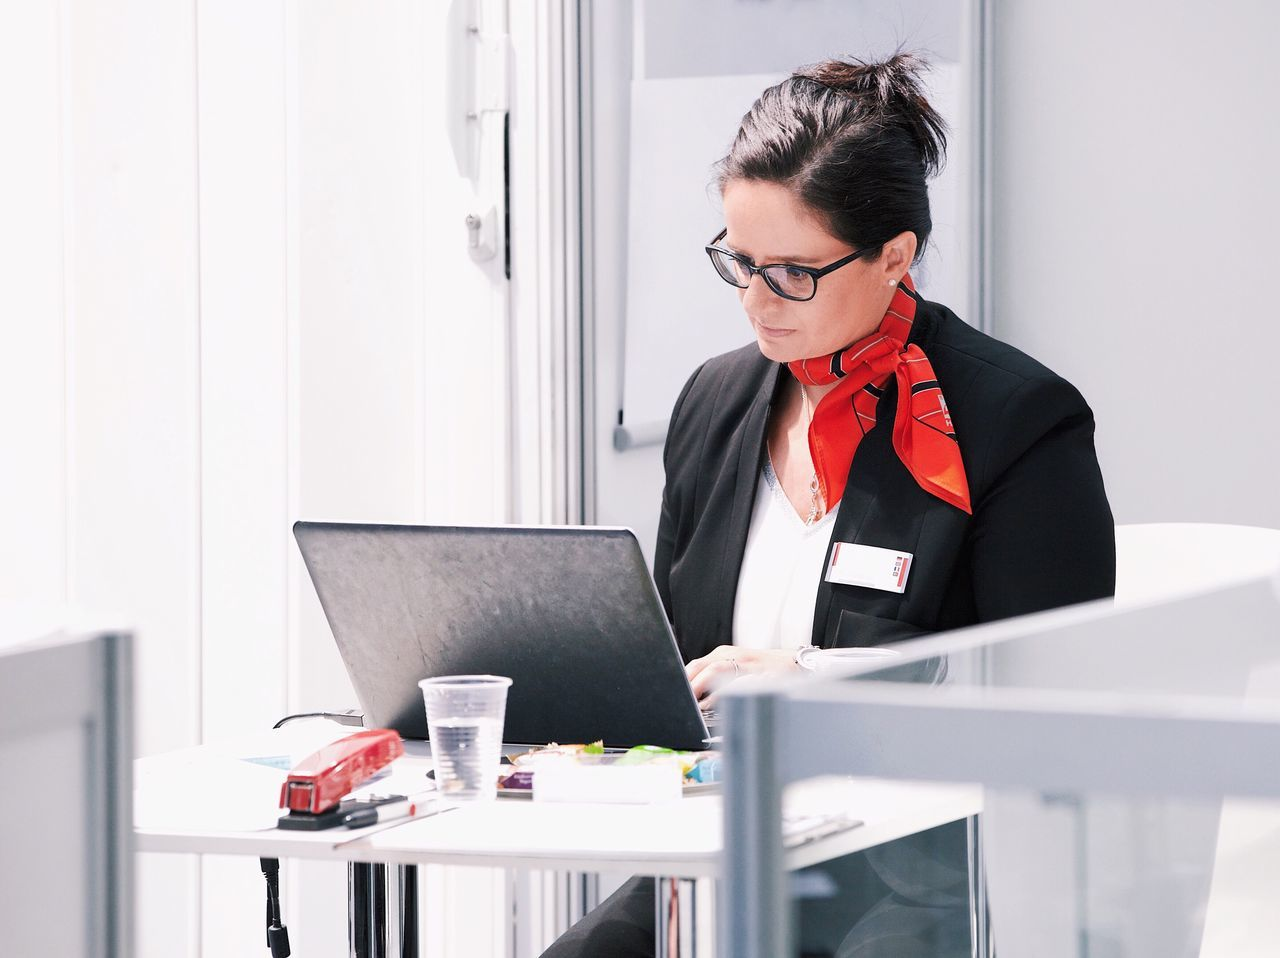 Business woman using laptop Wireless Technology Technology Laptop Using Laptop Computer Communication Business Connection Business Finance And Industry Office Businesswear Businesswoman One Person Internet Working Business Person Manager Corporate Business Professional Suit